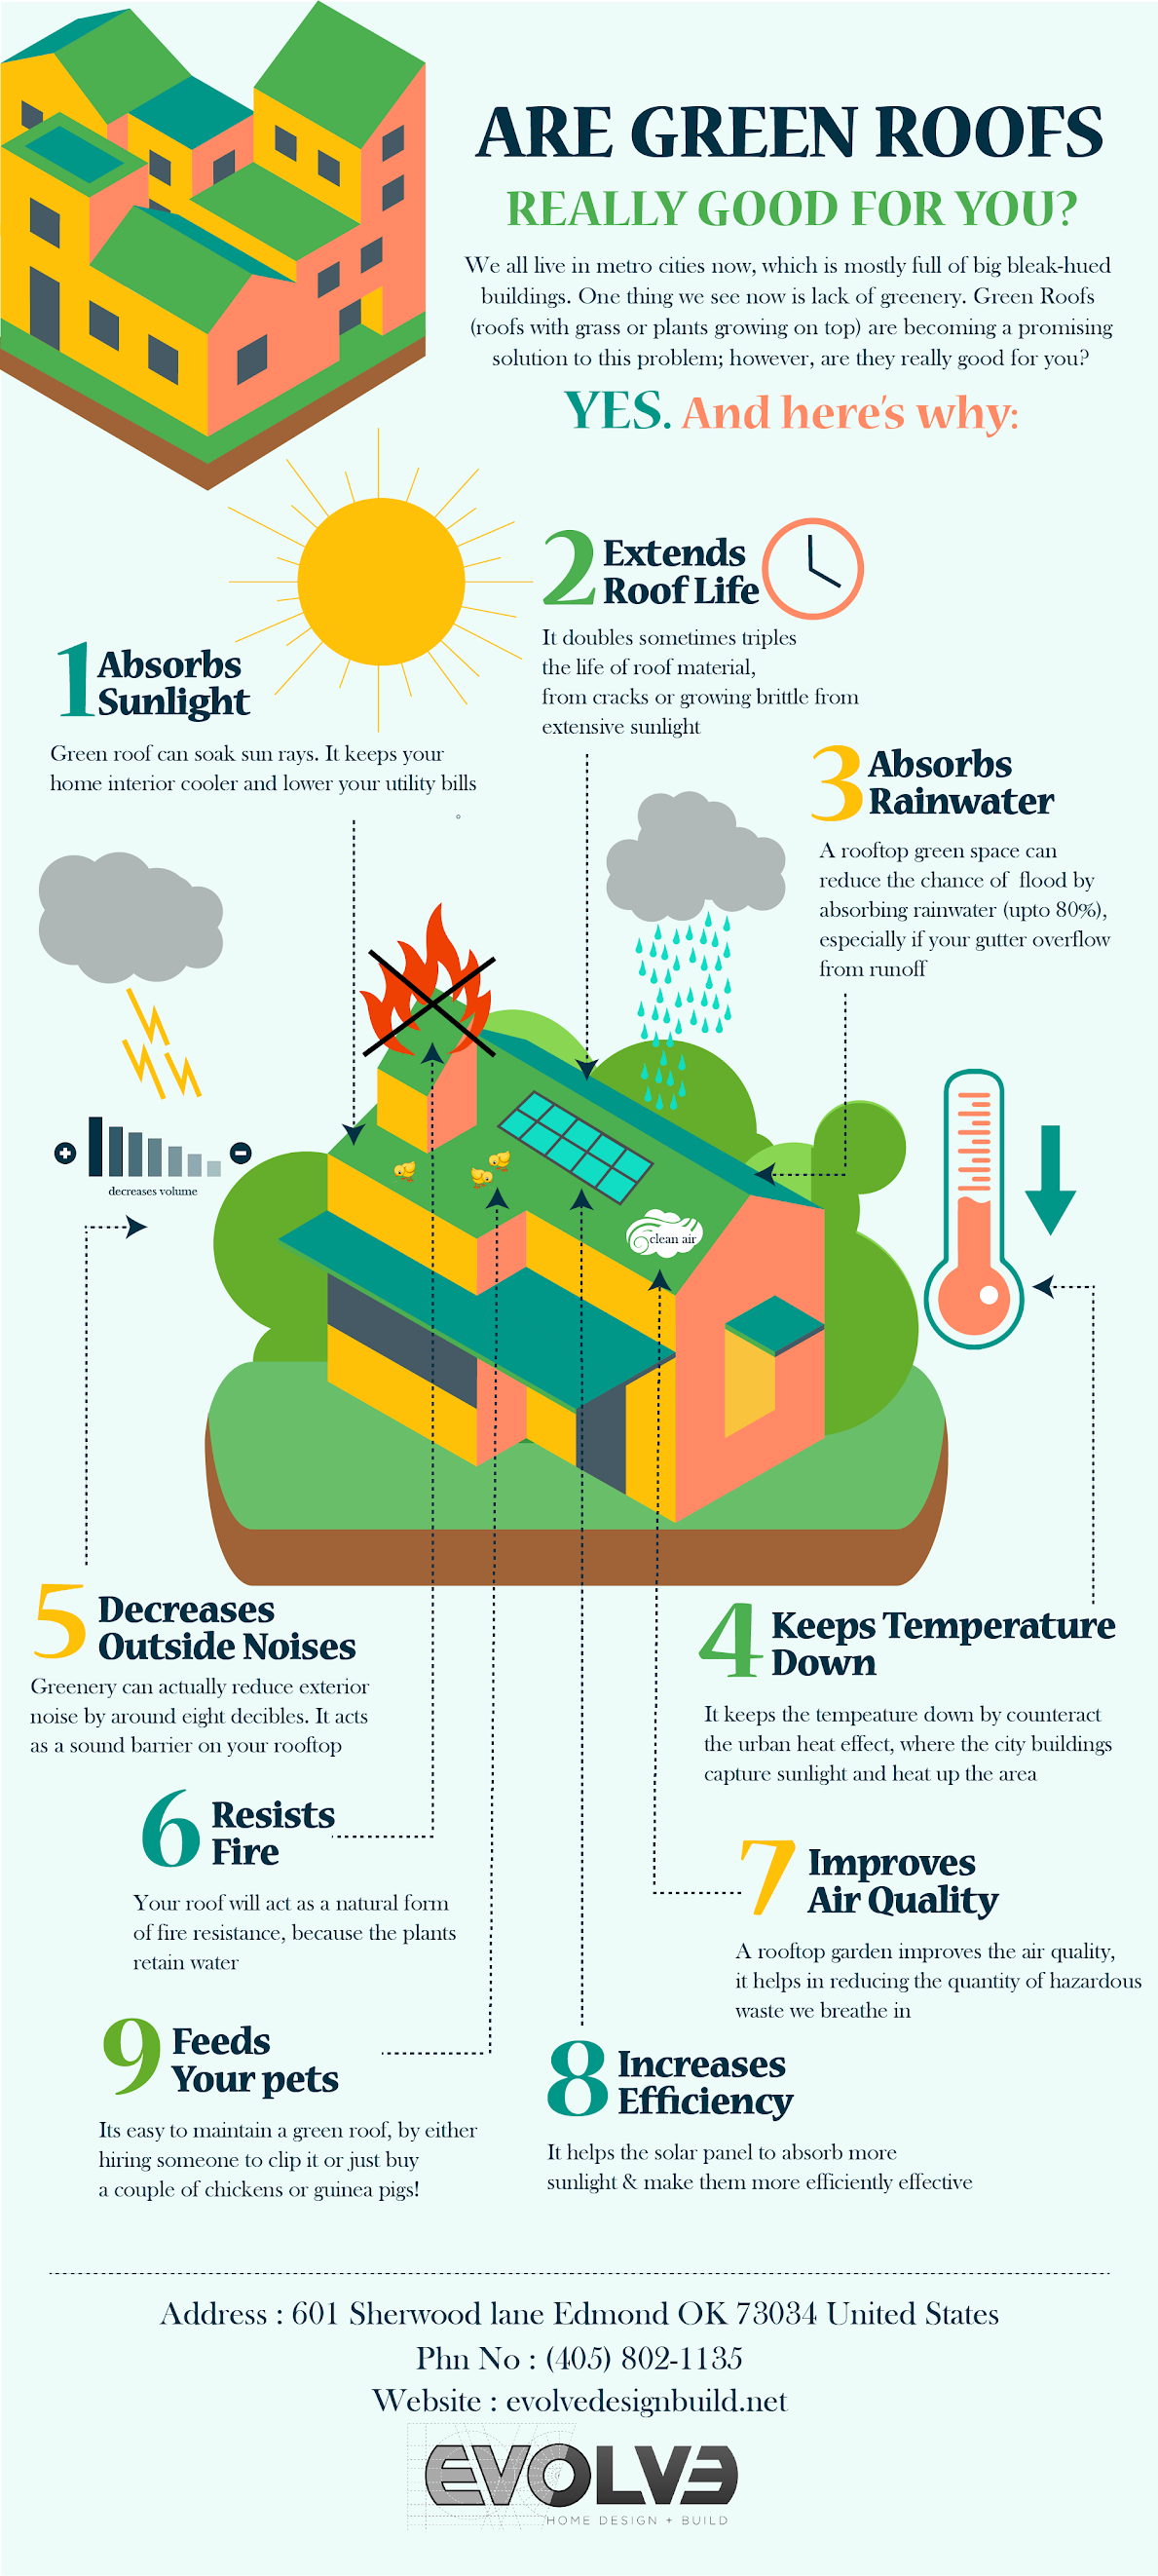 8 Benefits of Green Roofs in Urban Areas - Infographic: